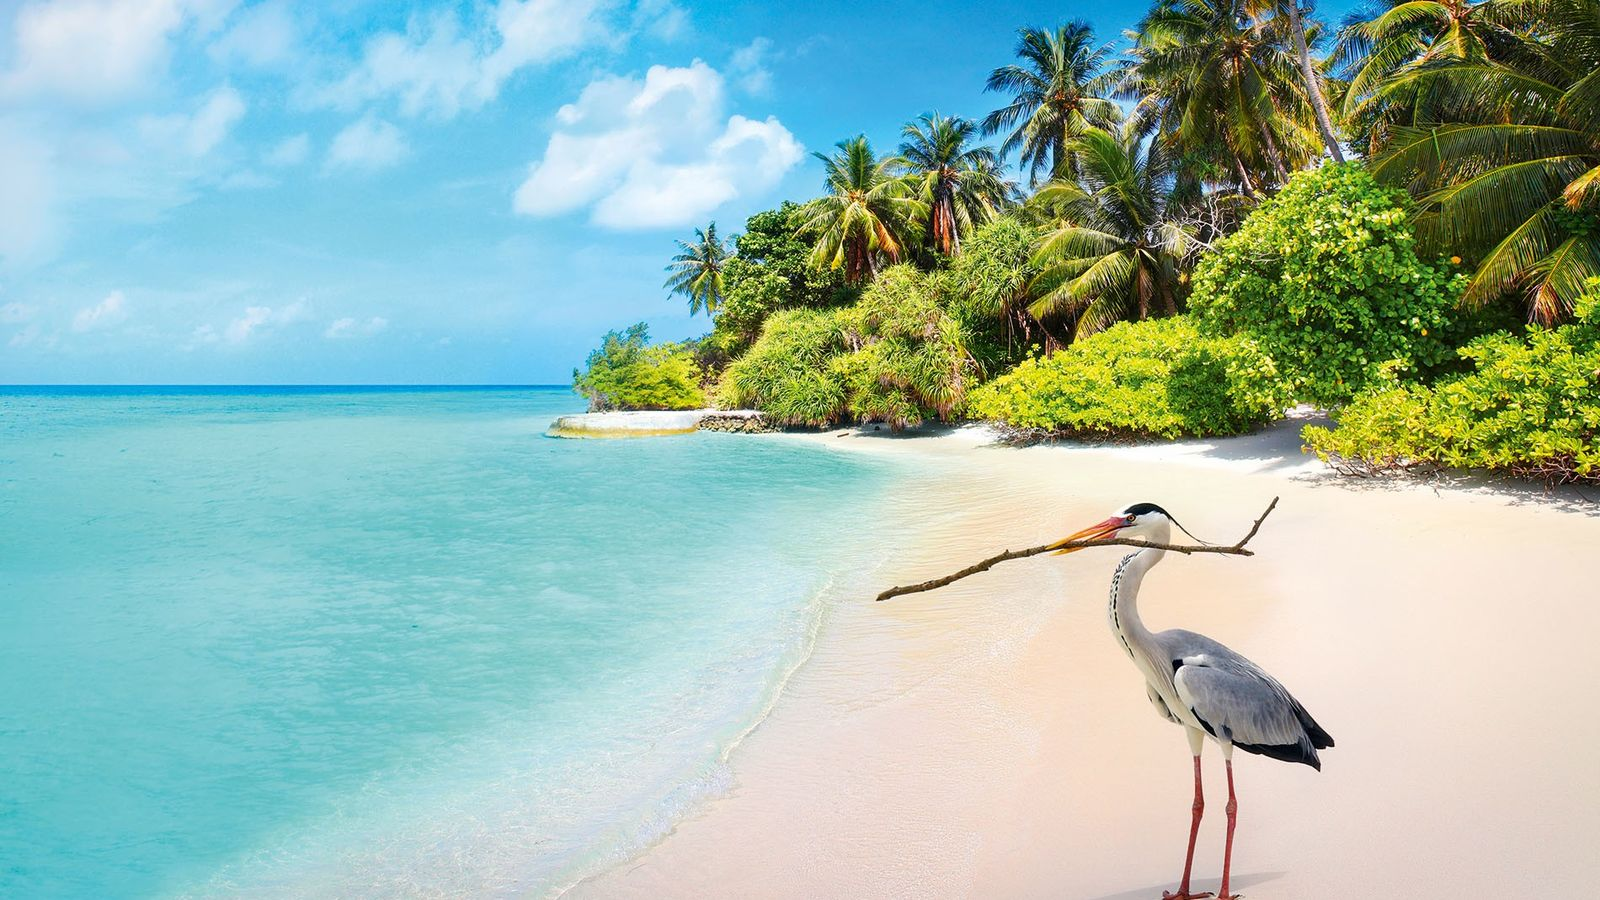 Grey heron on the beach at Bandos Island, the Maldives.